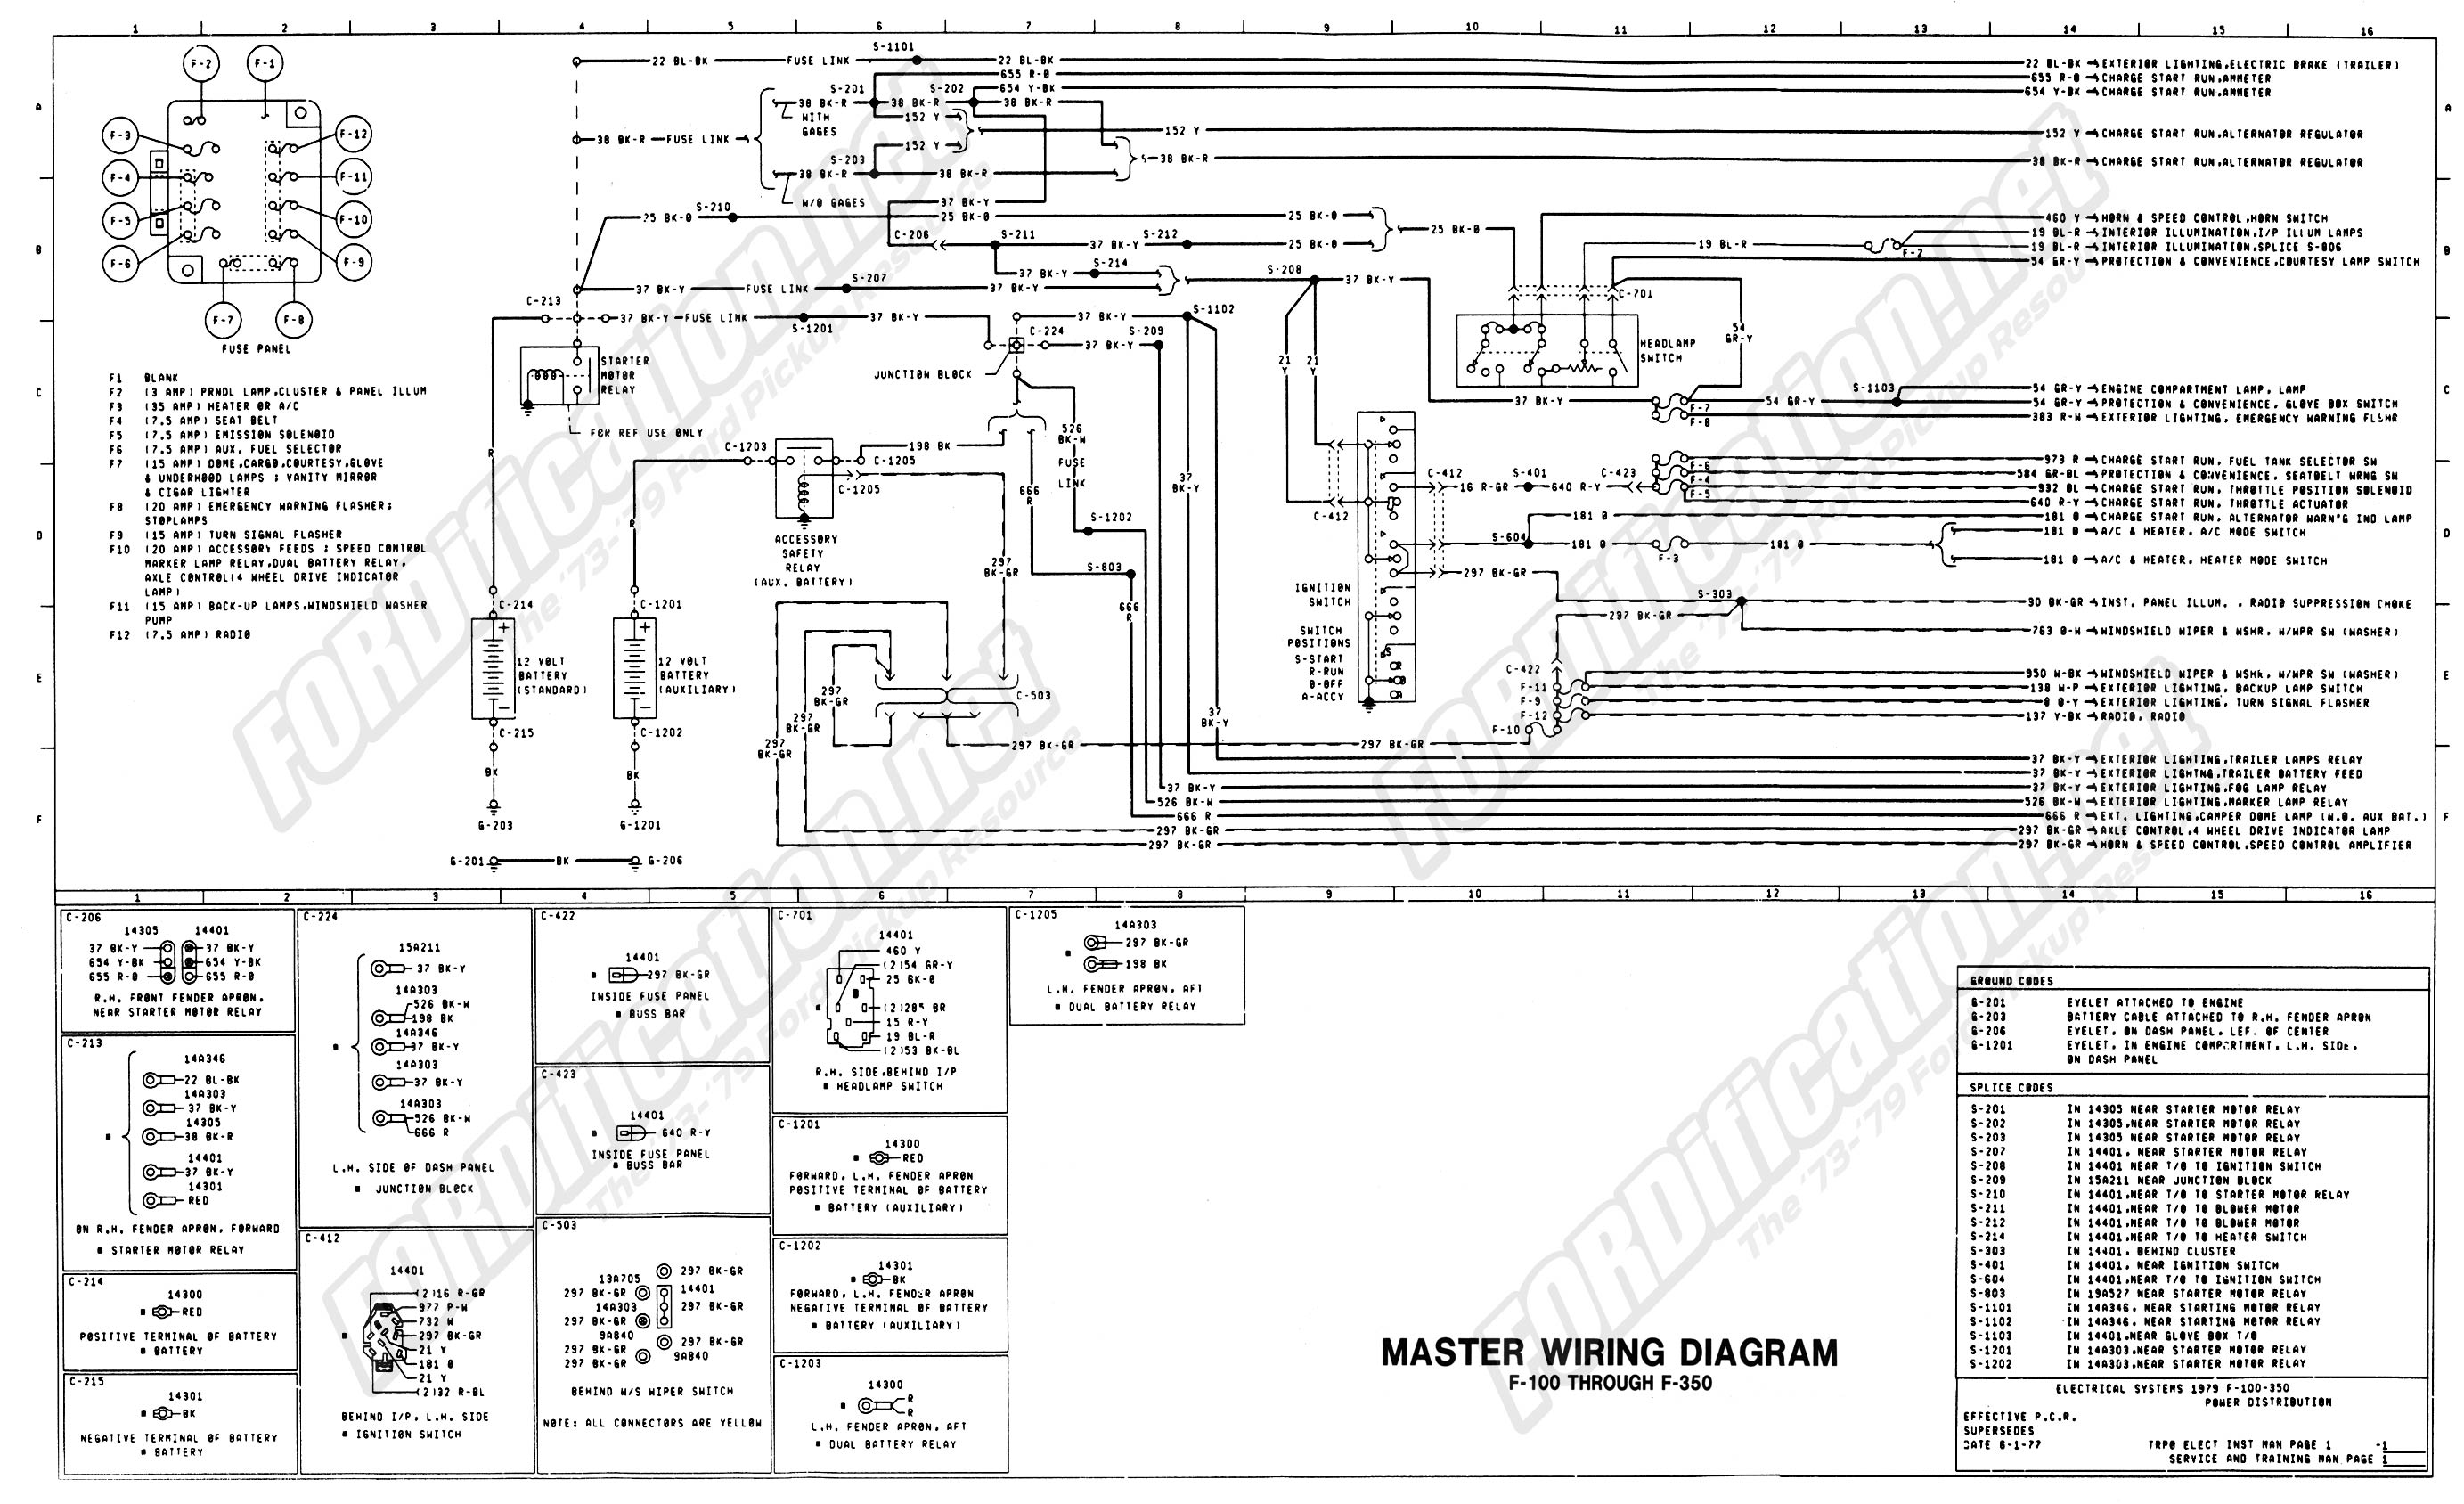 wiring_79master_1of9 1973 1979 ford truck wiring diagrams & schematics fordification net 1979 ford f100 fuse box diagram at bayanpartner.co